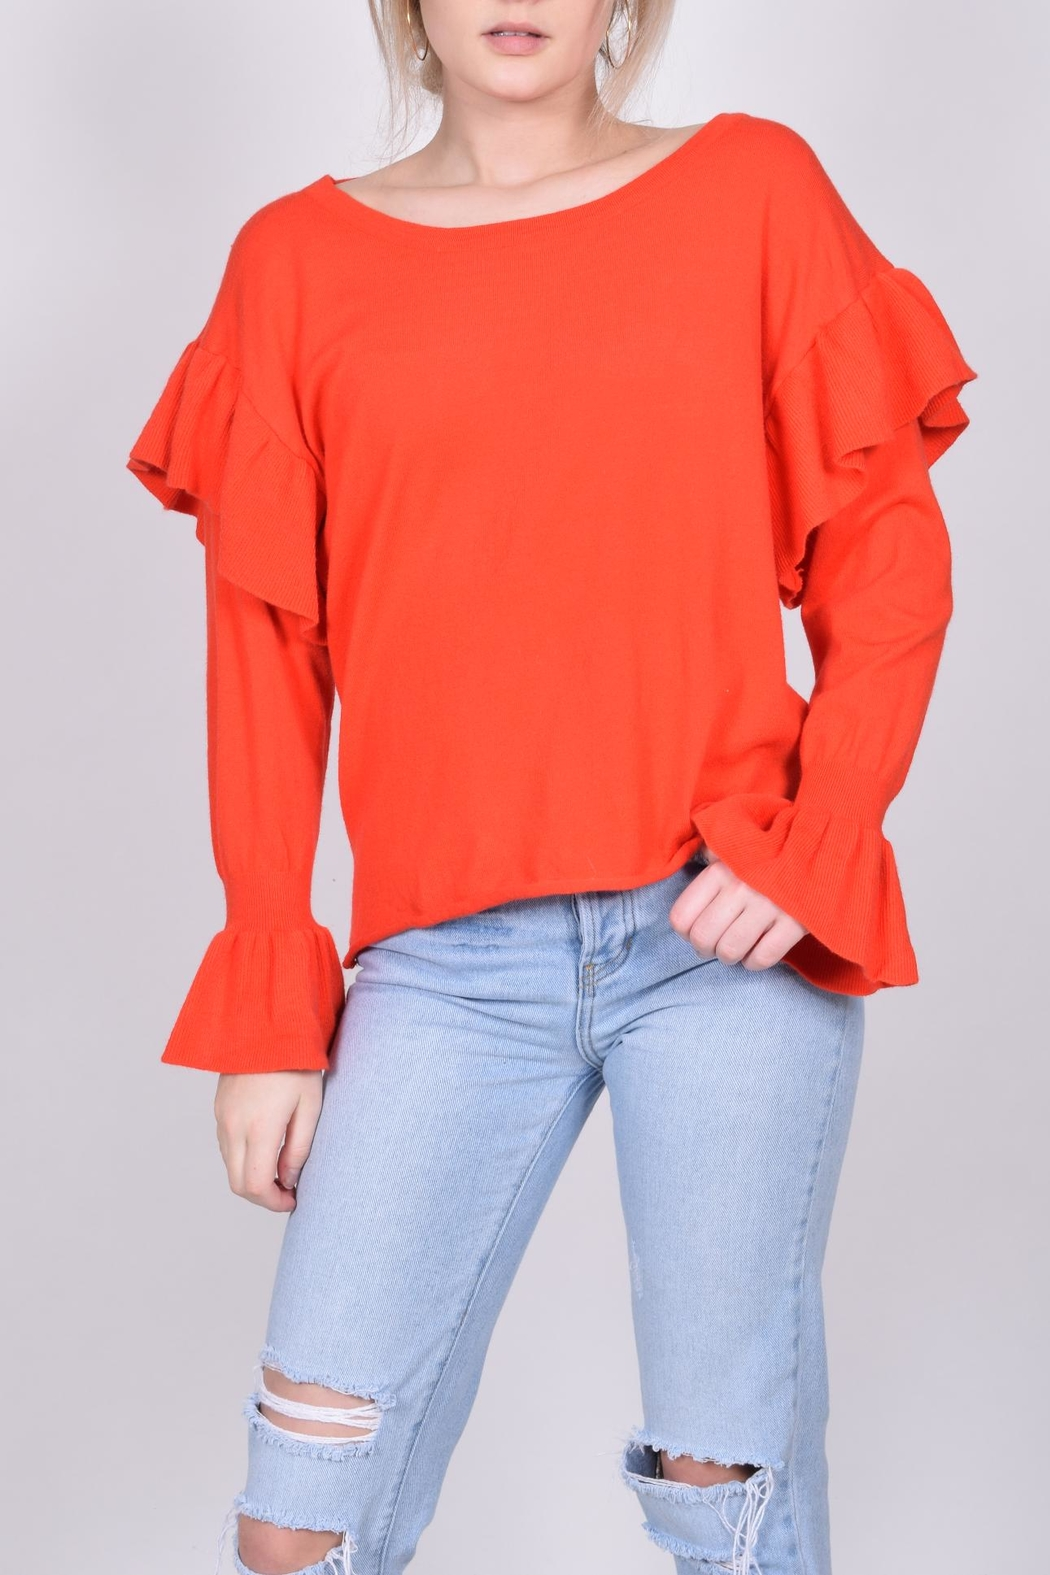 Unbranded Red Ruffle Sweater - Main Image